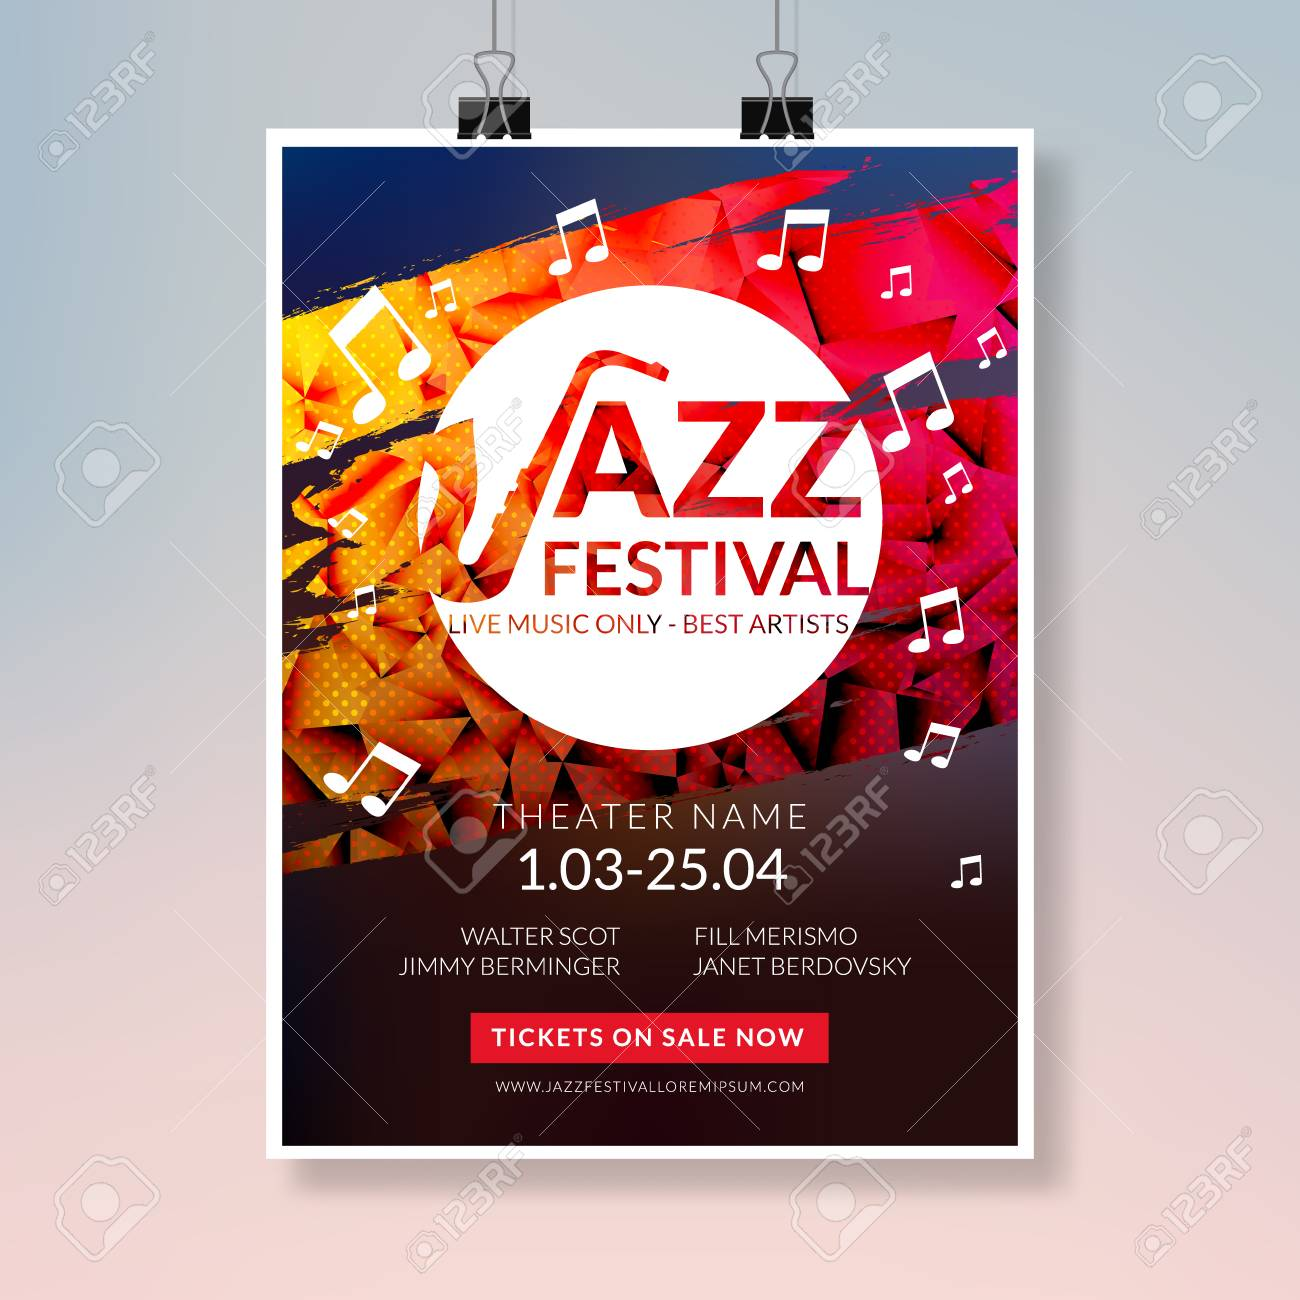 A Vector Musical Flyer Jazz Festival Music Concert Poster Background Brochure Template